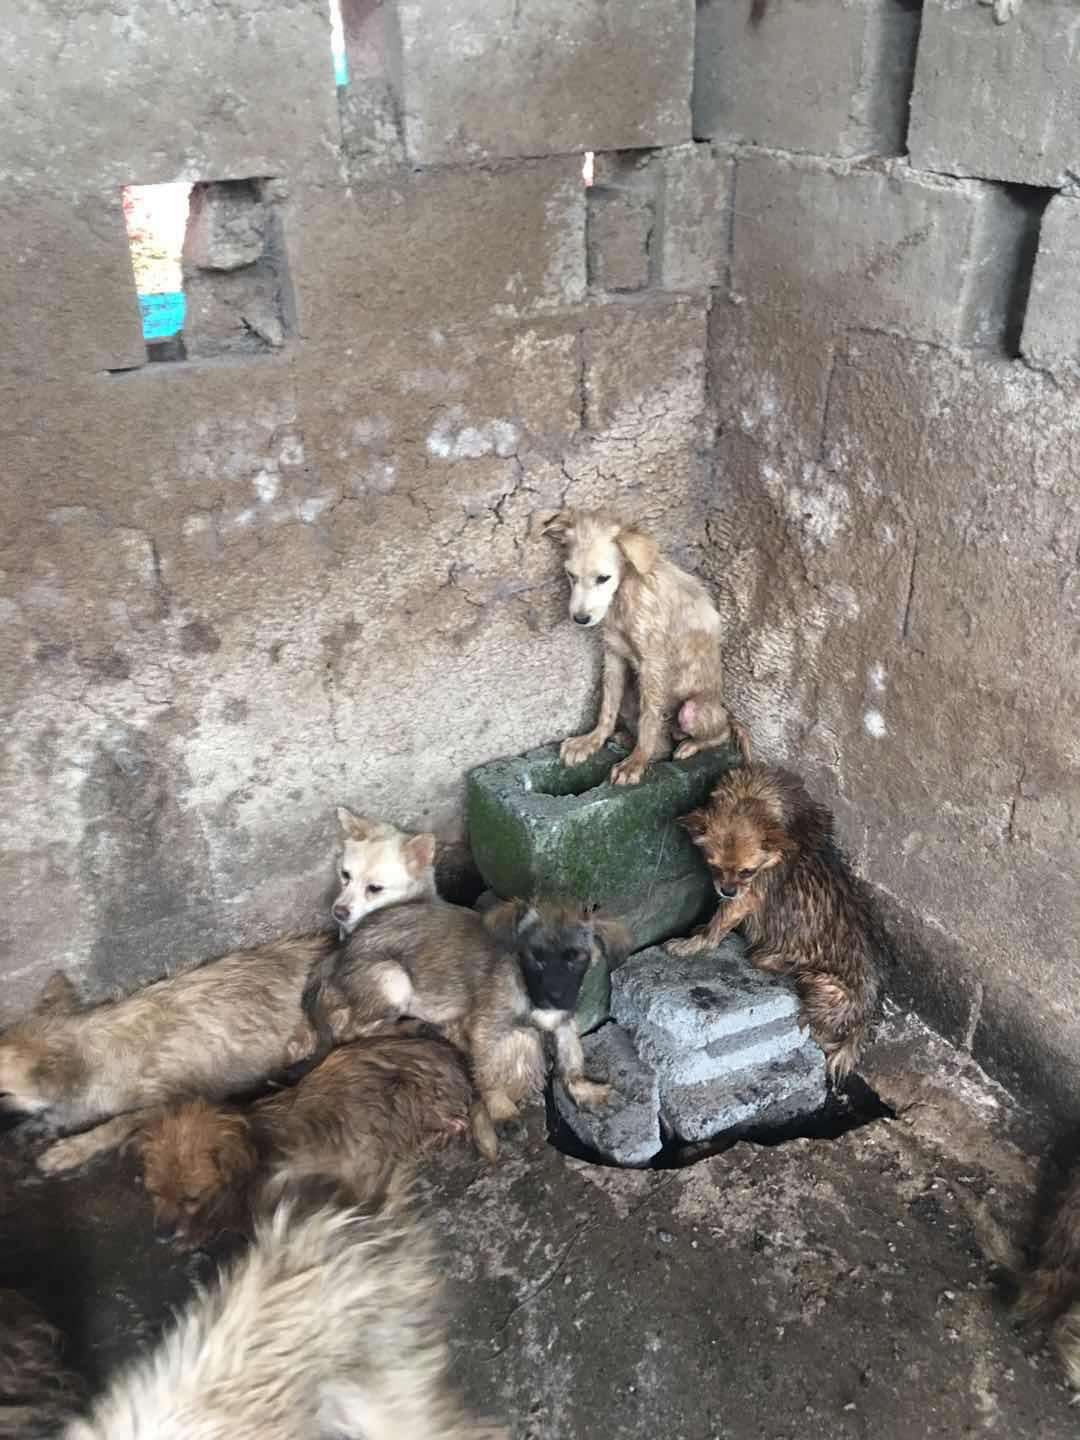 62 dogs rescued from Yulin slaughterhouse June 2019